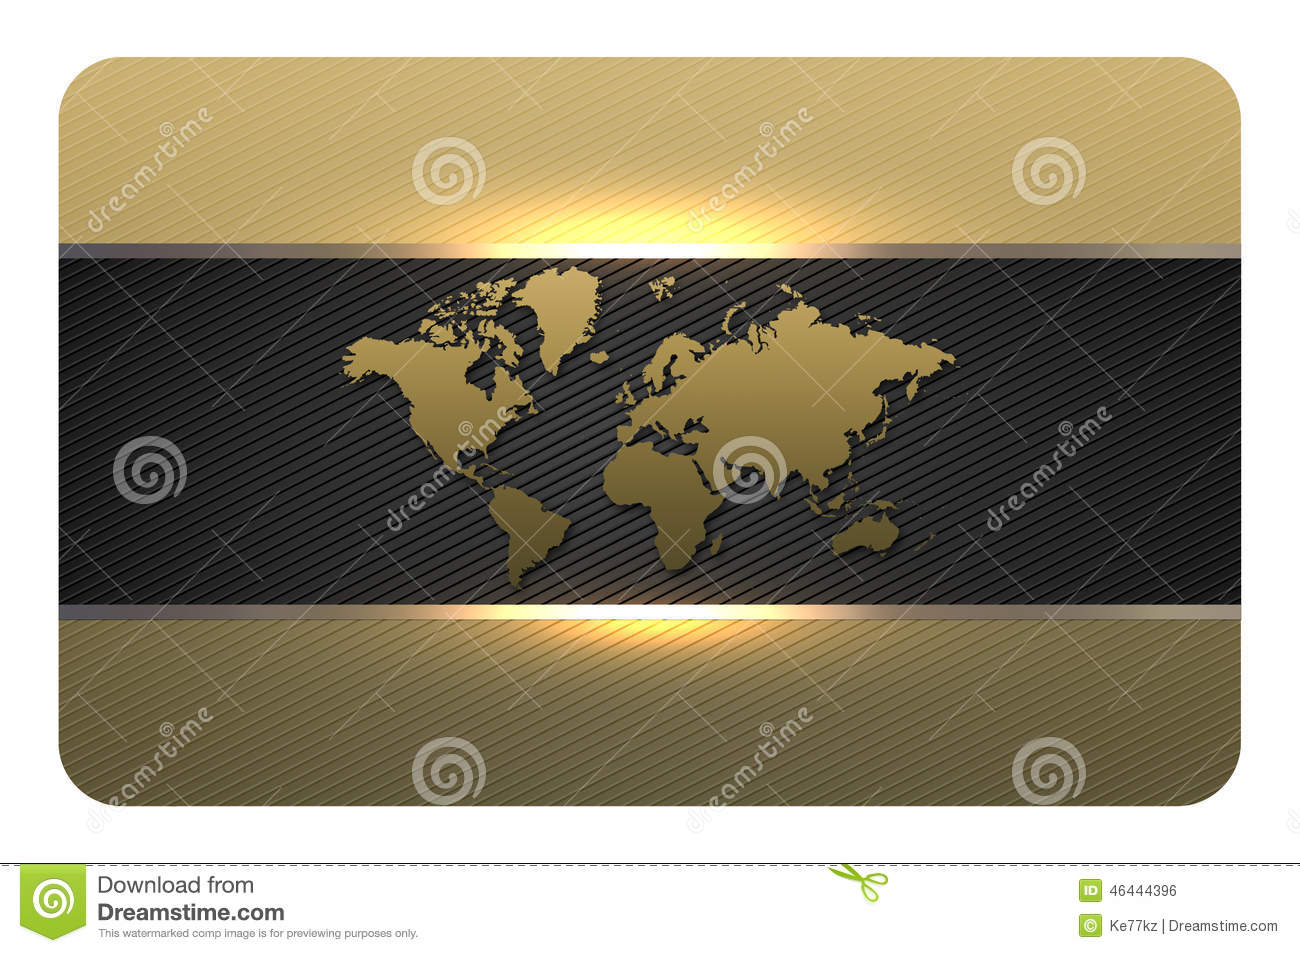 Gold Business Card Template. Stock Illustration - Illustration of ...